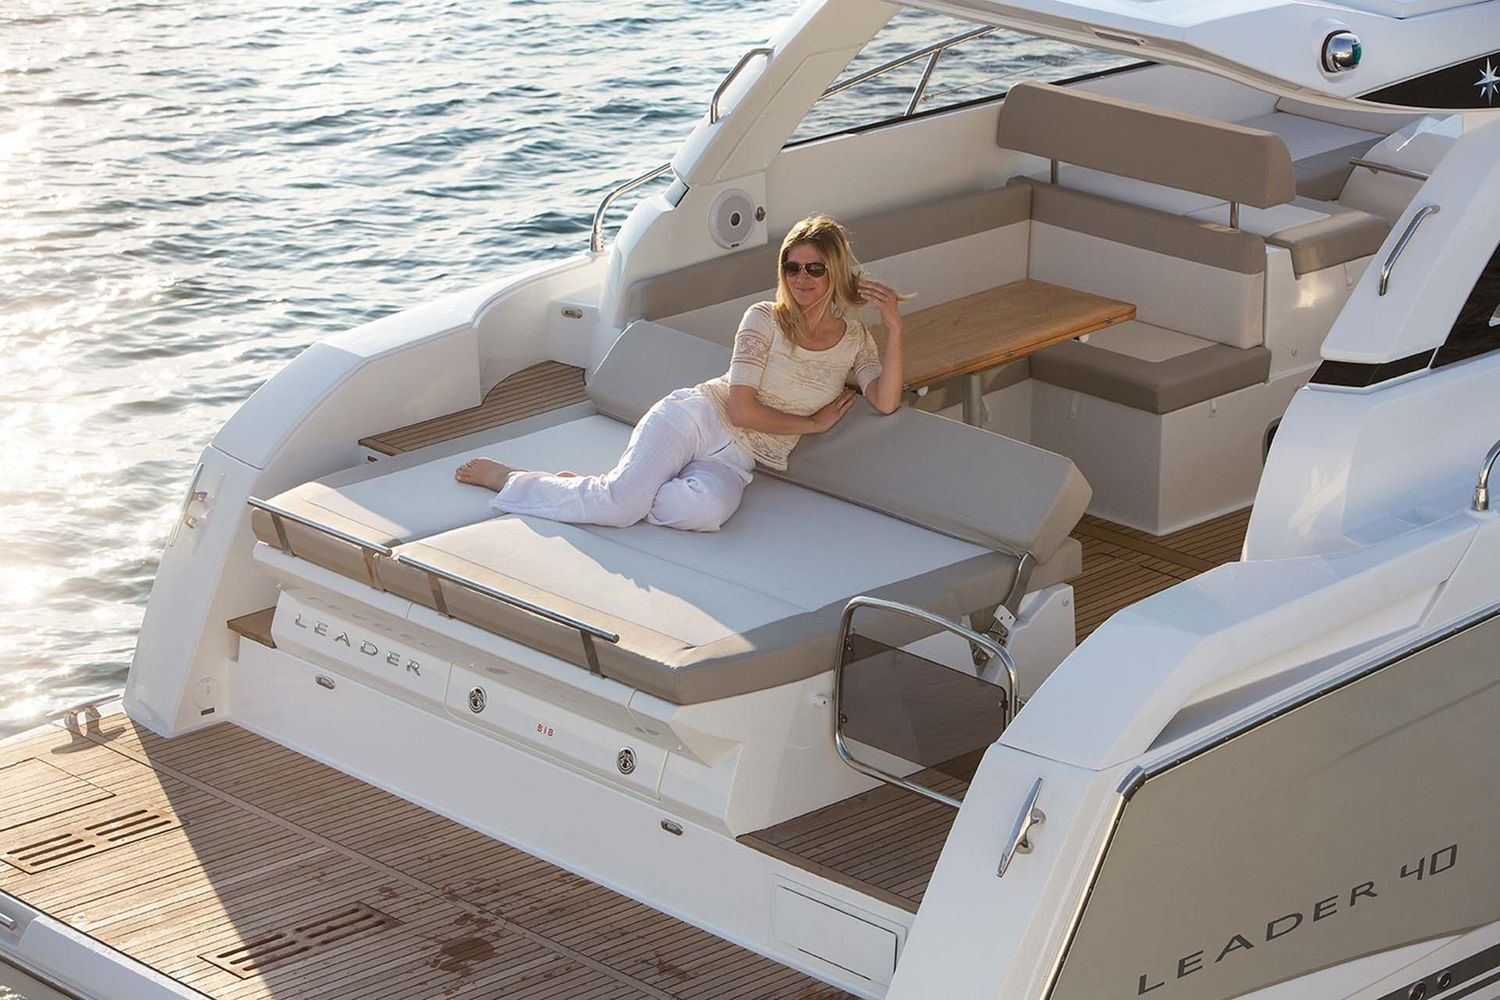 Jeanneau Leader 40 - bathing platform and sunpad